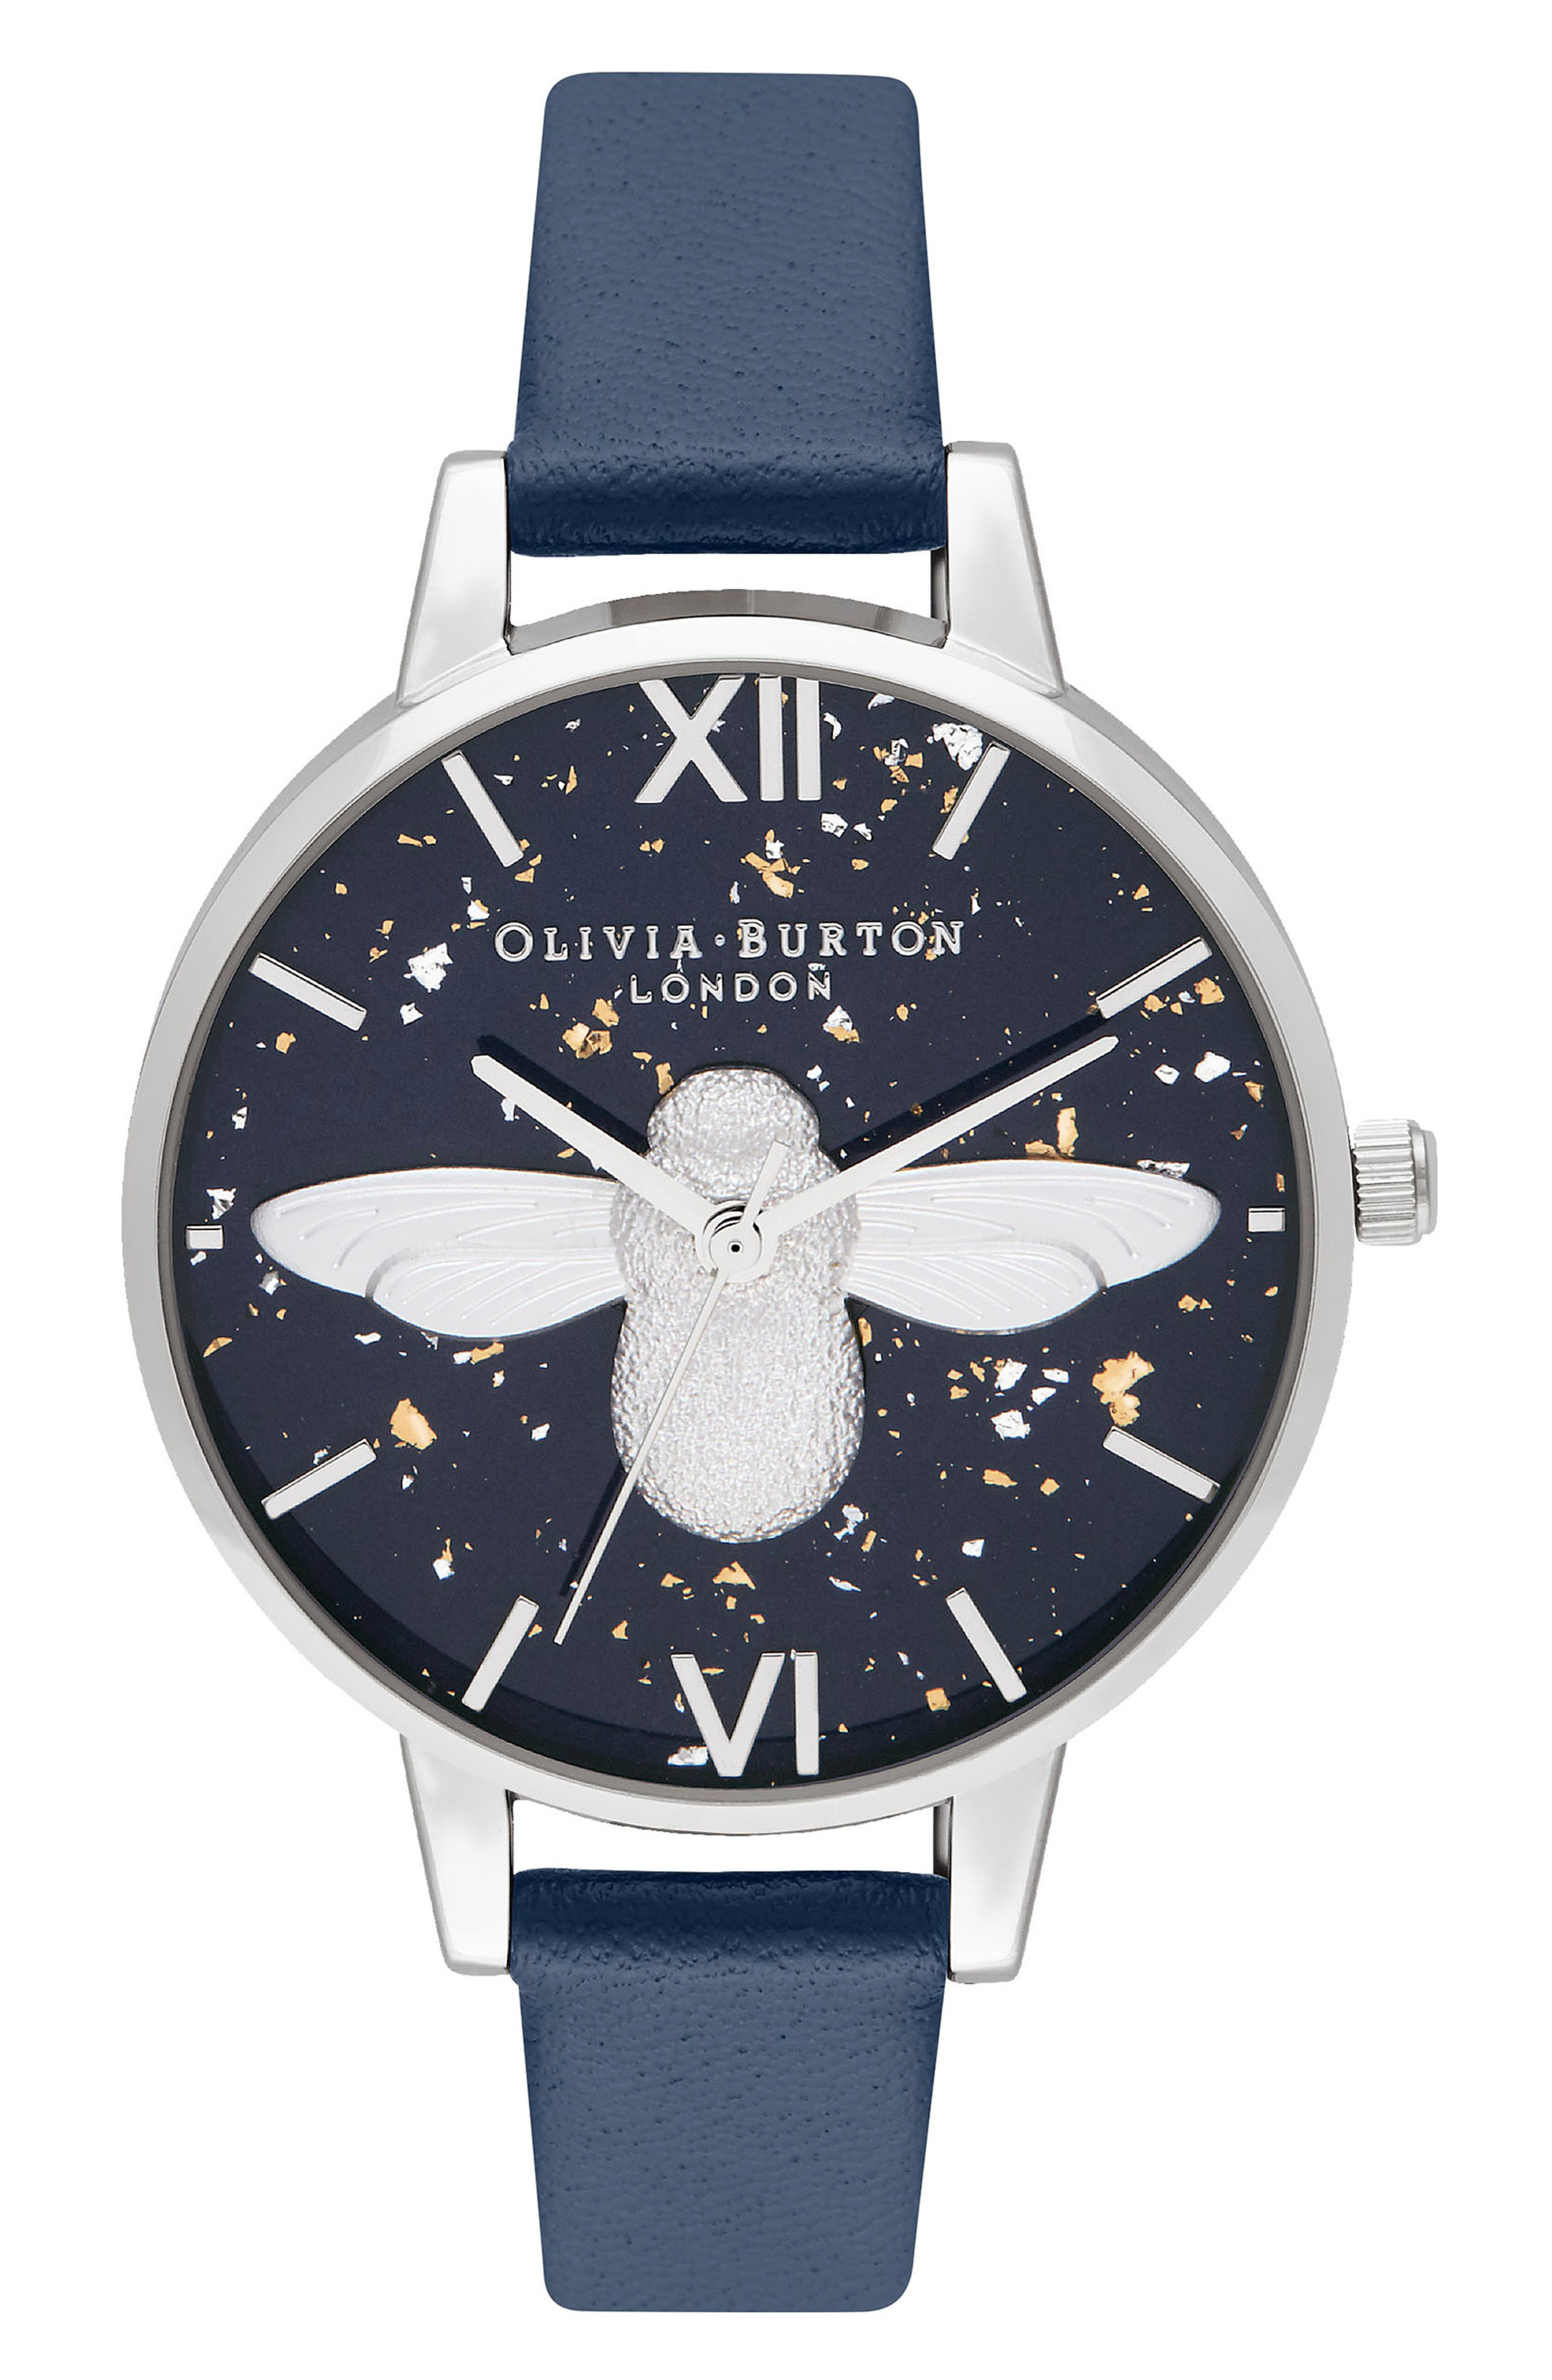 OLIVIA BURTON Celestial Bee Leather Strap Watch, 34Mm in Blue/ Silver